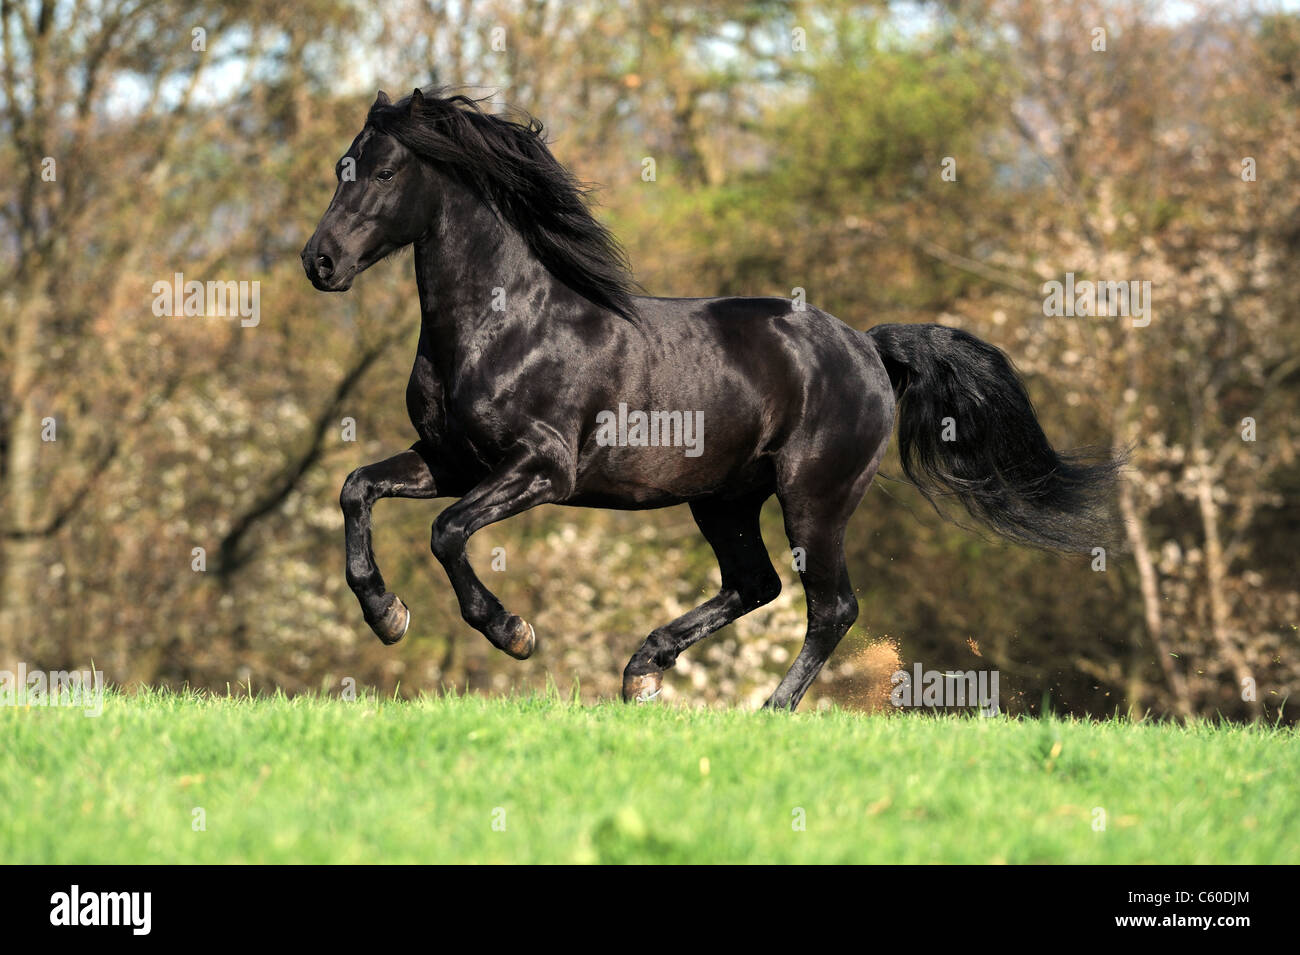 Morgan Horse (Equus ferus caballus). Black stallion in a gallop on a meadow. - Stock Image